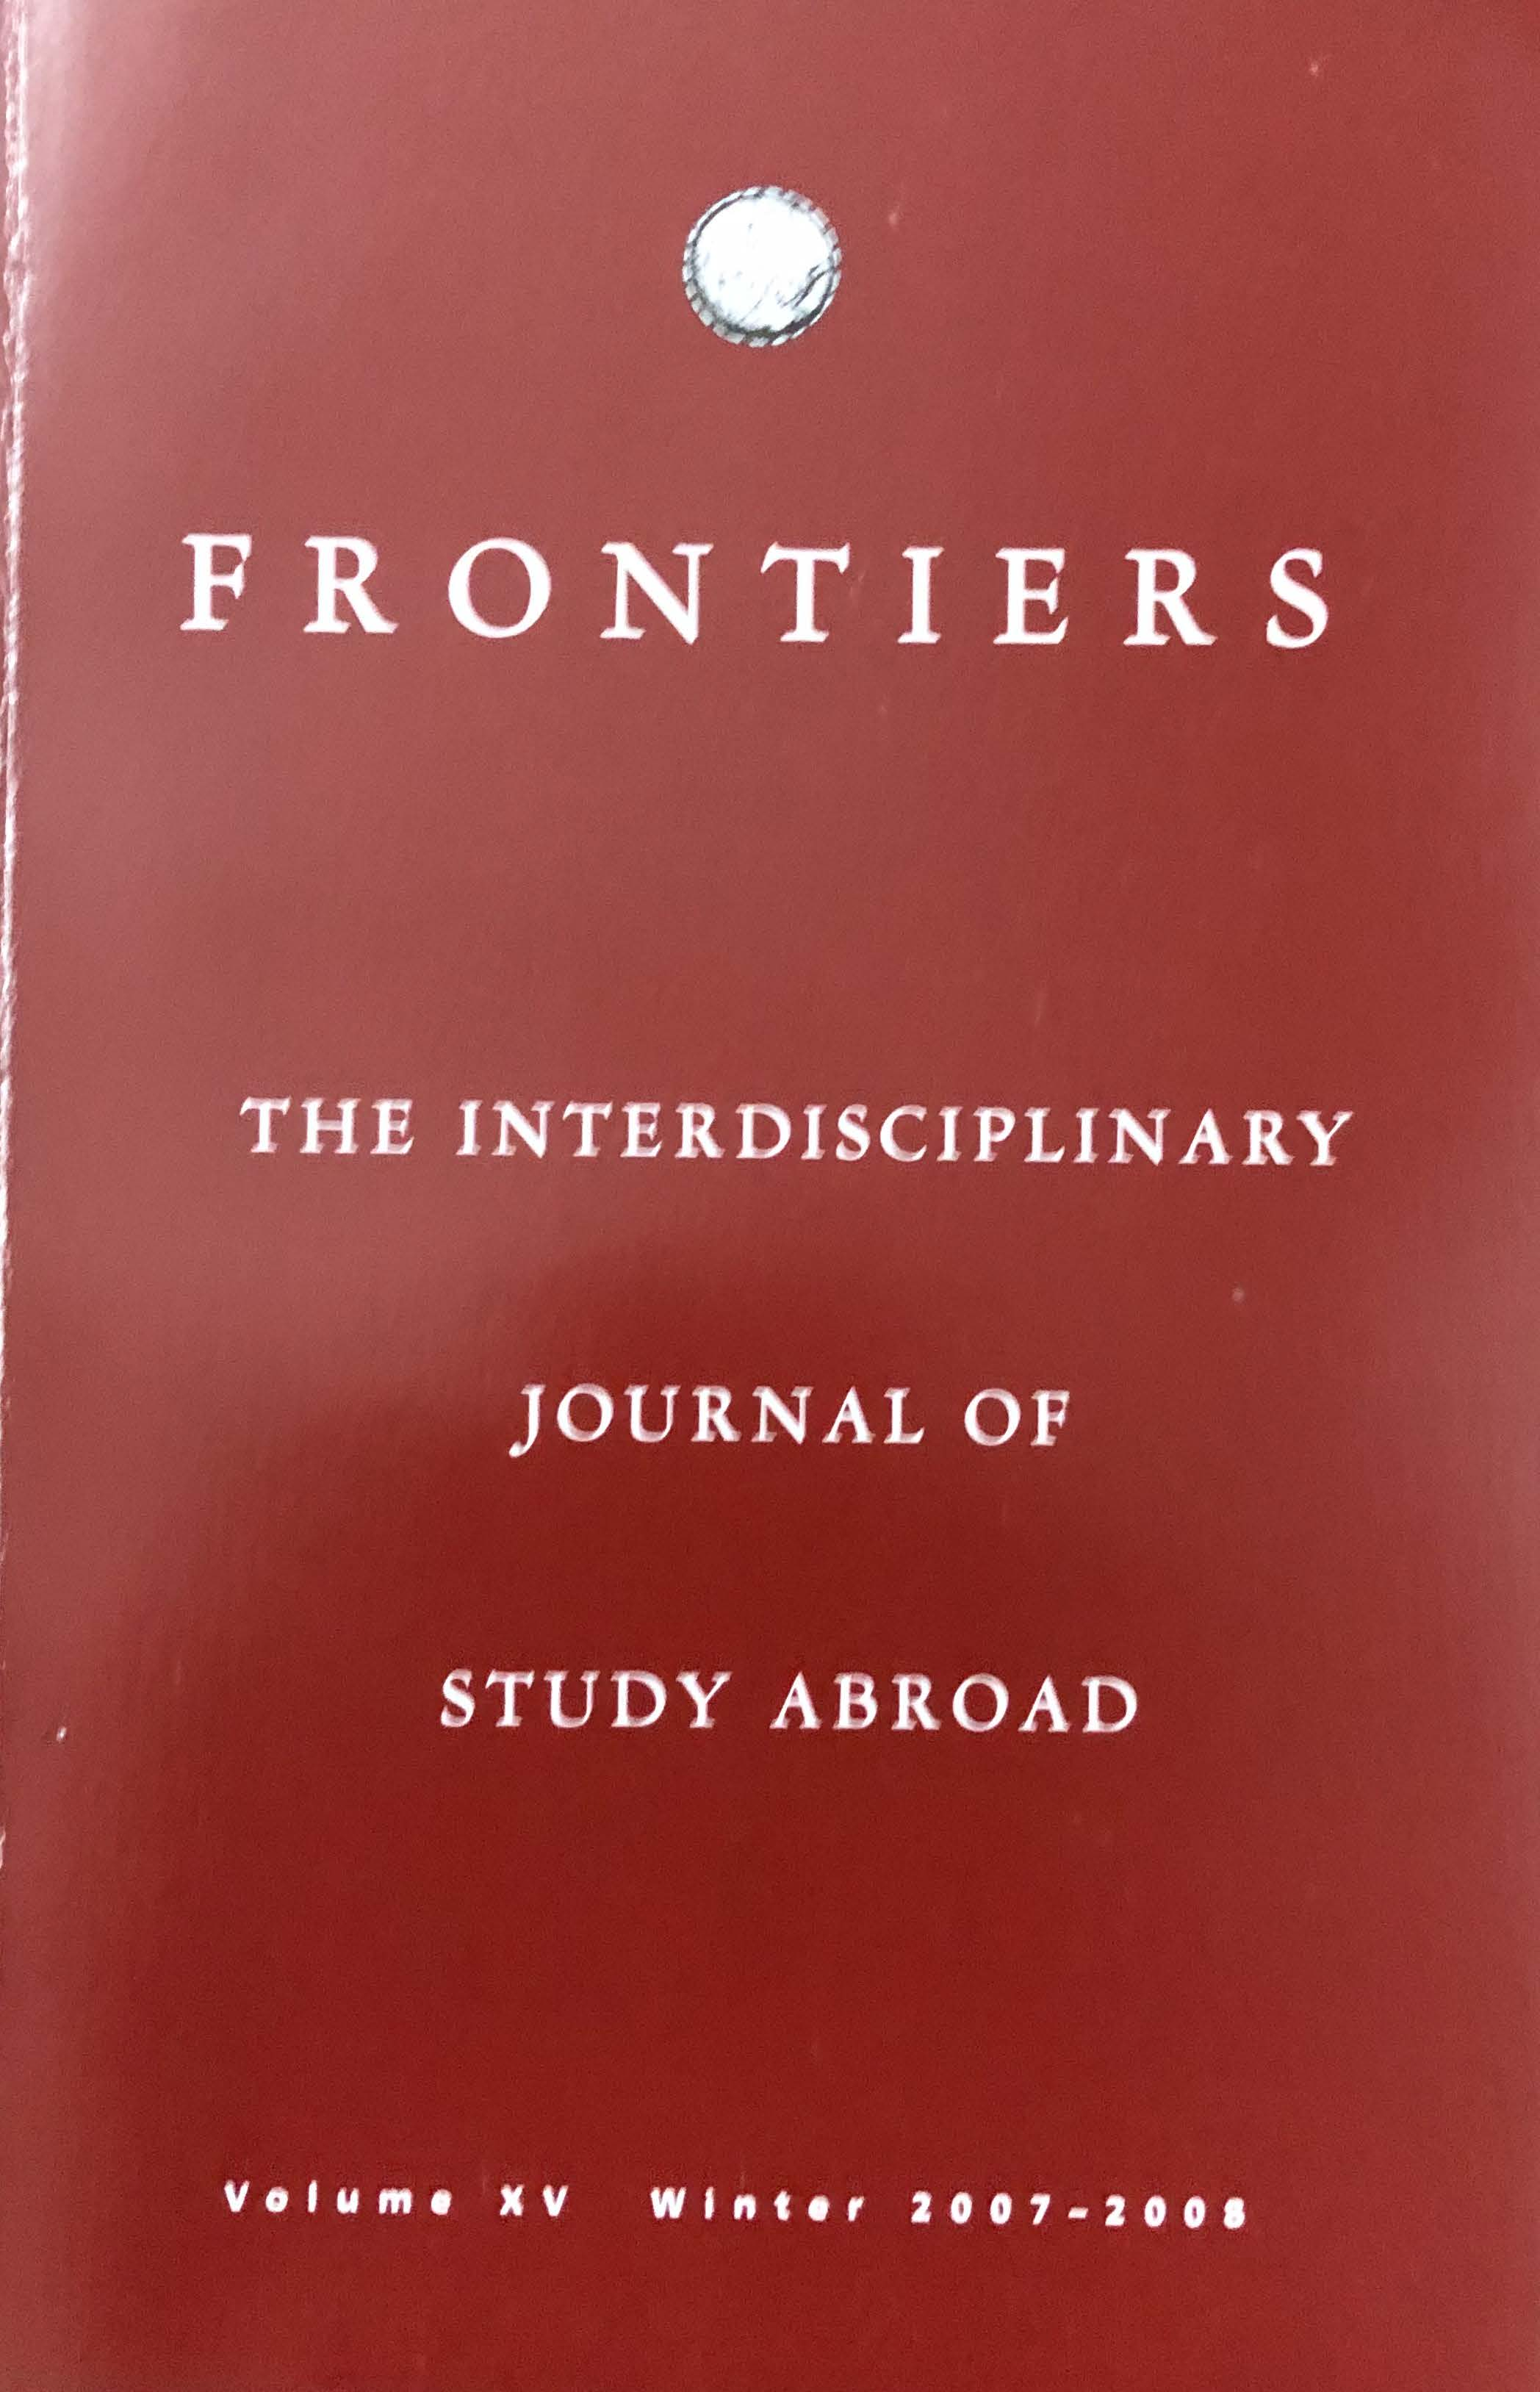 Frontiers: The Interdisciplinary Journal of Study  Abroad Volume 15 Winter 2007-2008, red cover with globe logo